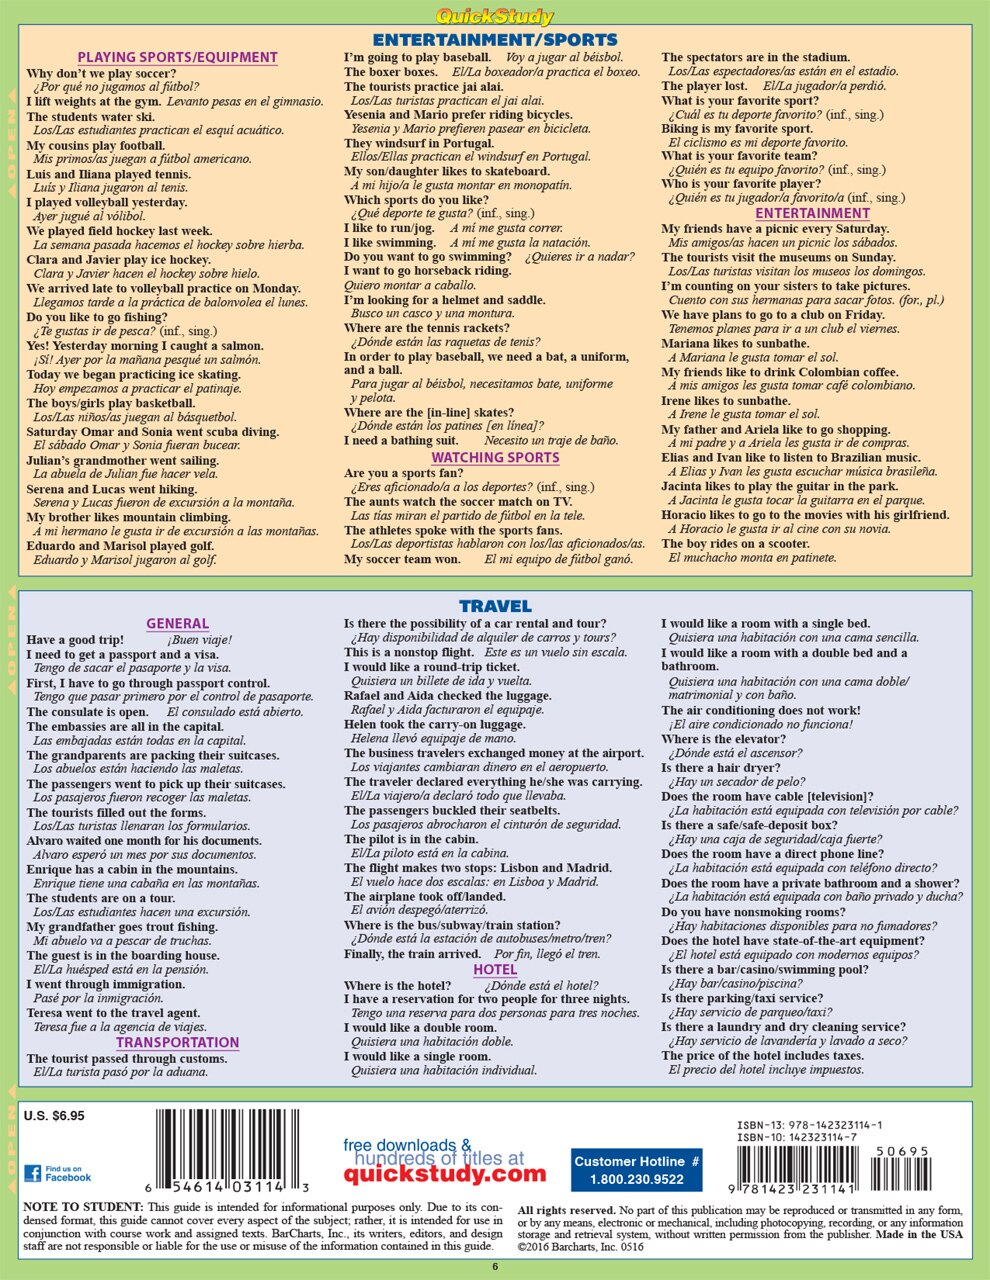 Quick Study QuickStudy Spanish Phrases Laminated Study Guide BarCharts Publishing Foreign Language Reference Back Image